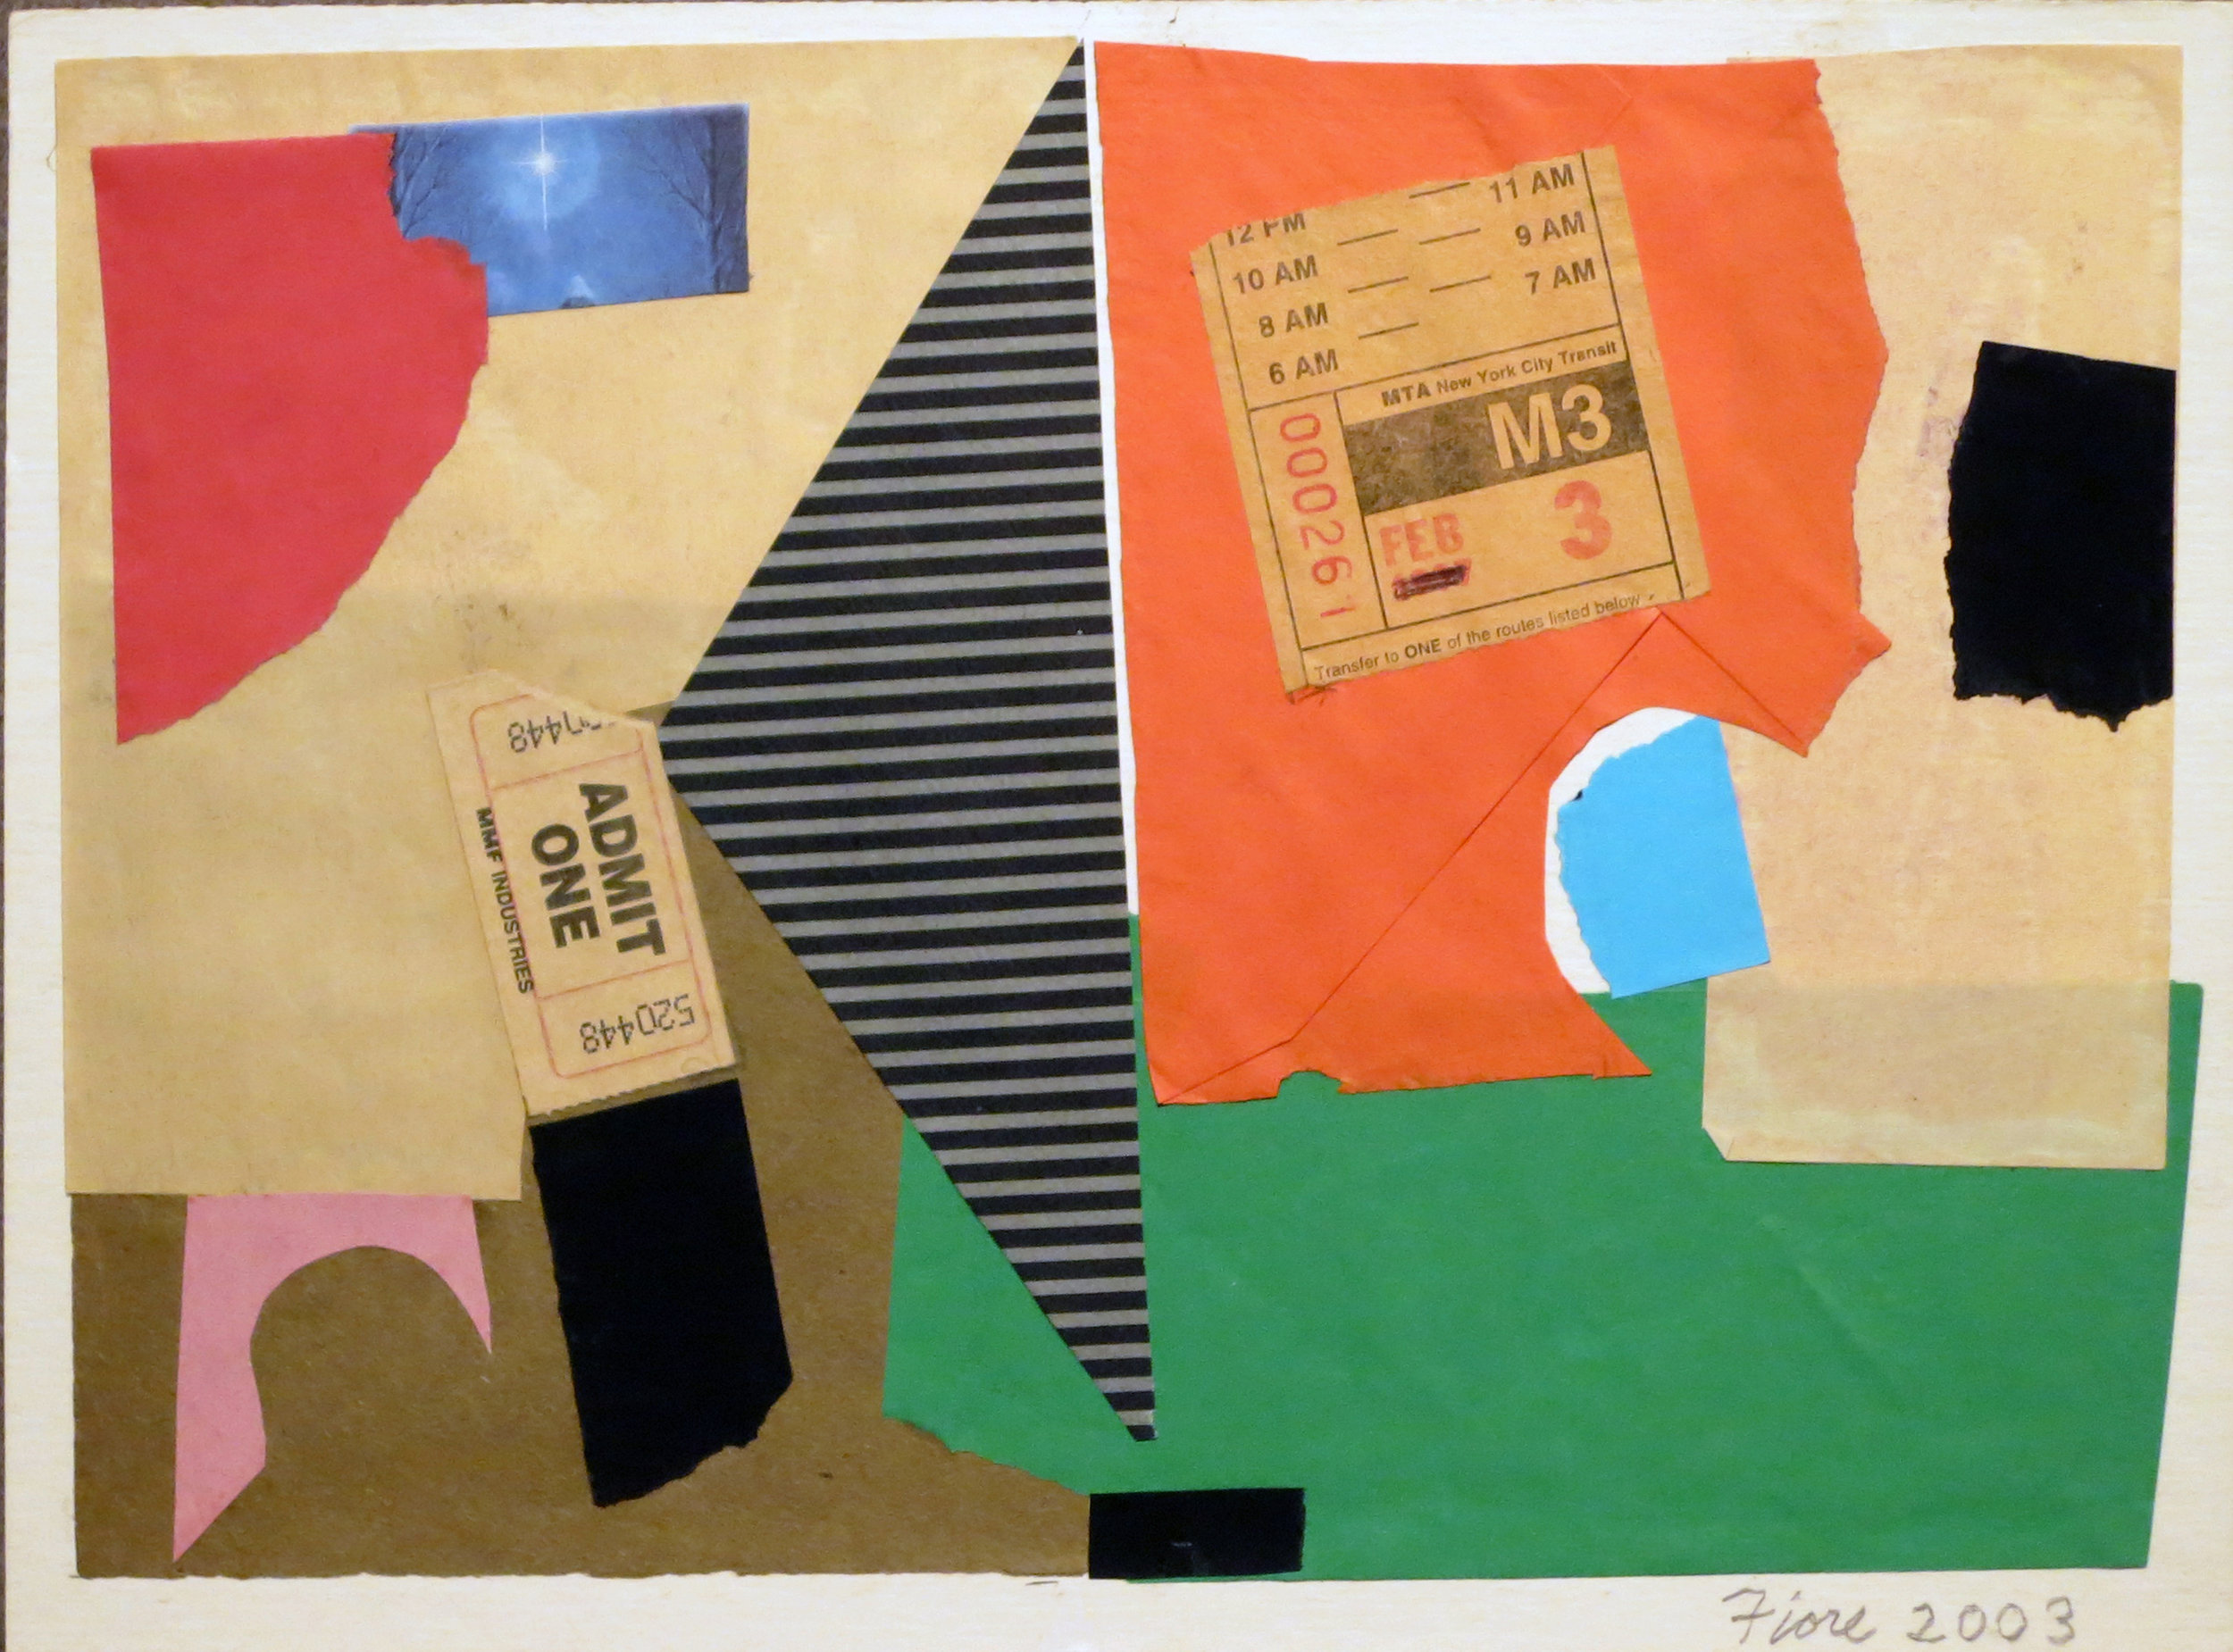 Abstract collage with envelopes, paper, and ticket stub